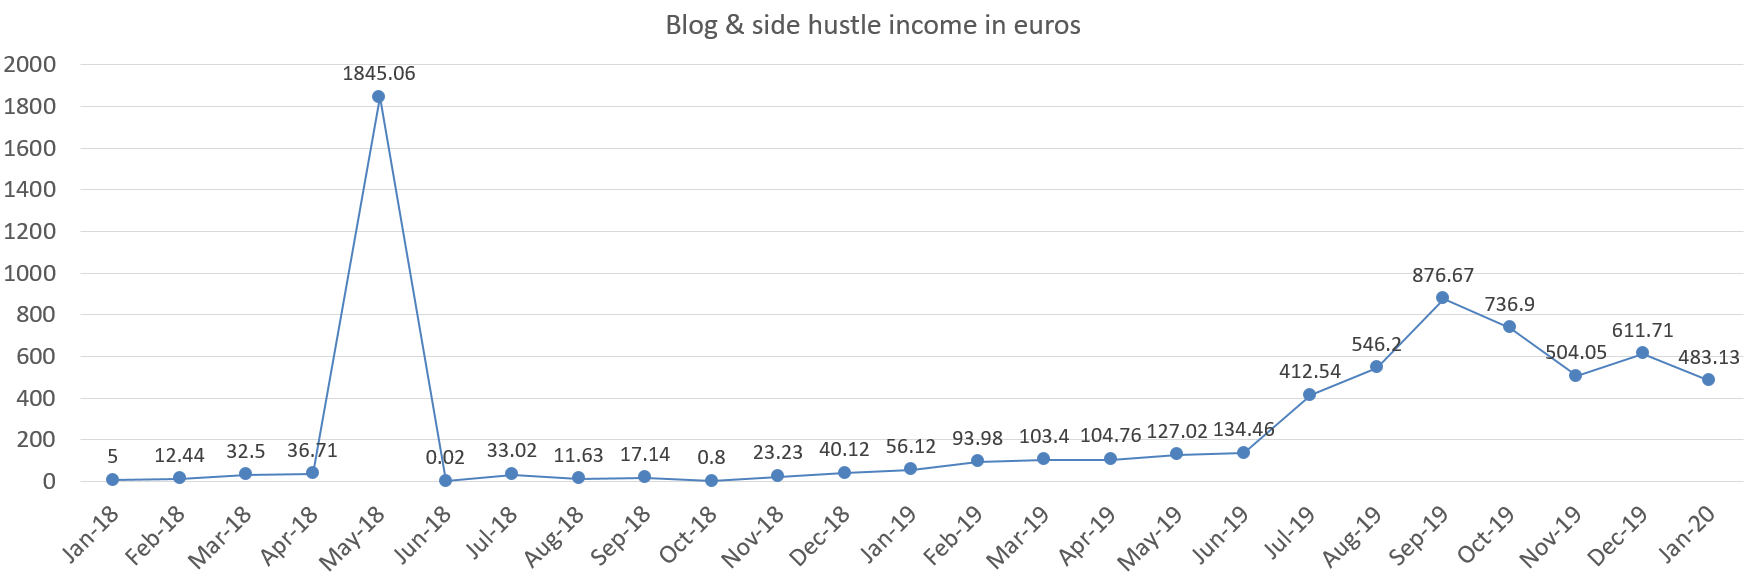 Blog and side hustle income in euros, january 2020 - portfolio update